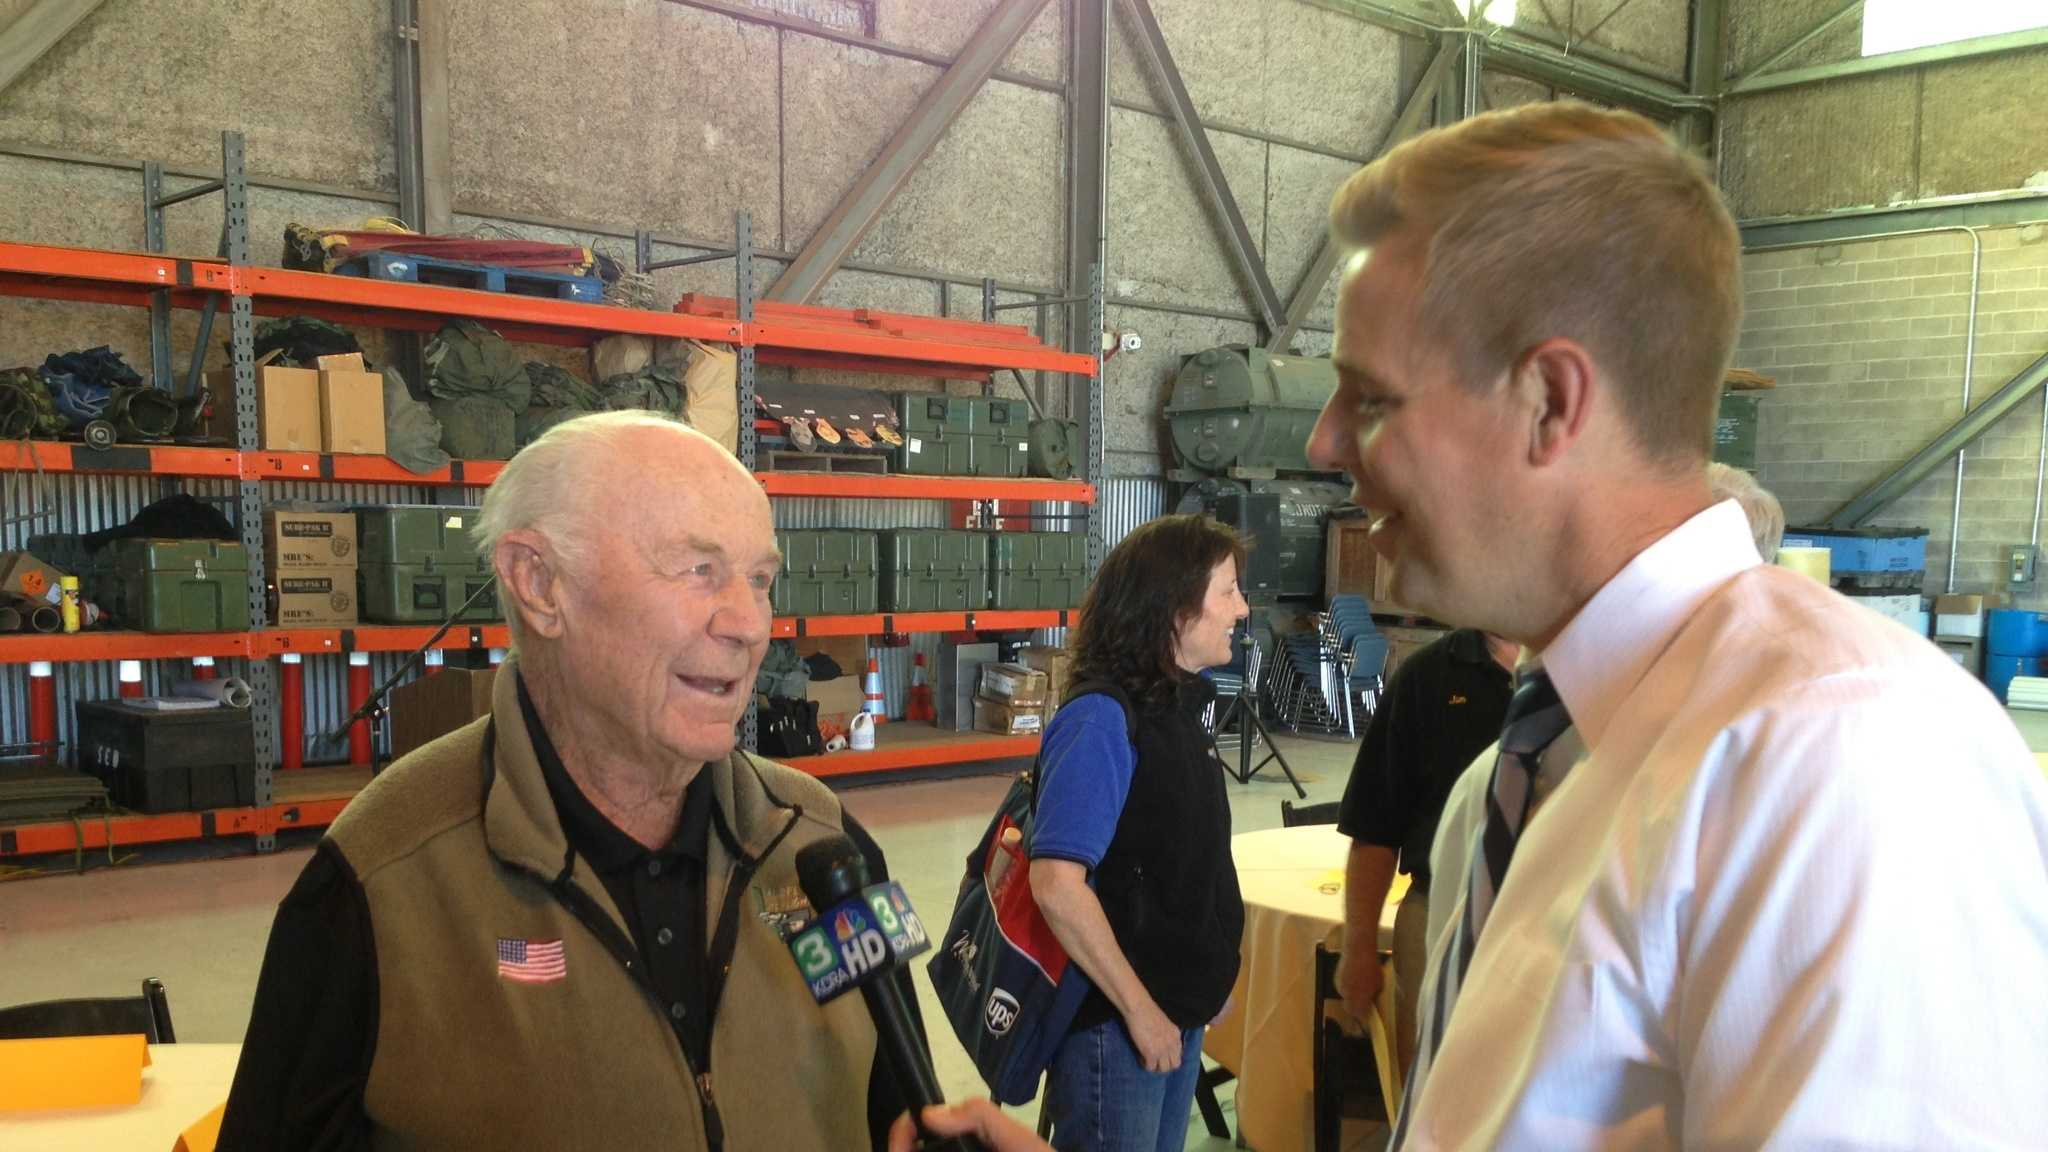 Chuck Yeager with KCRA 3 reporter Richard Sharp (May 22, 2013).